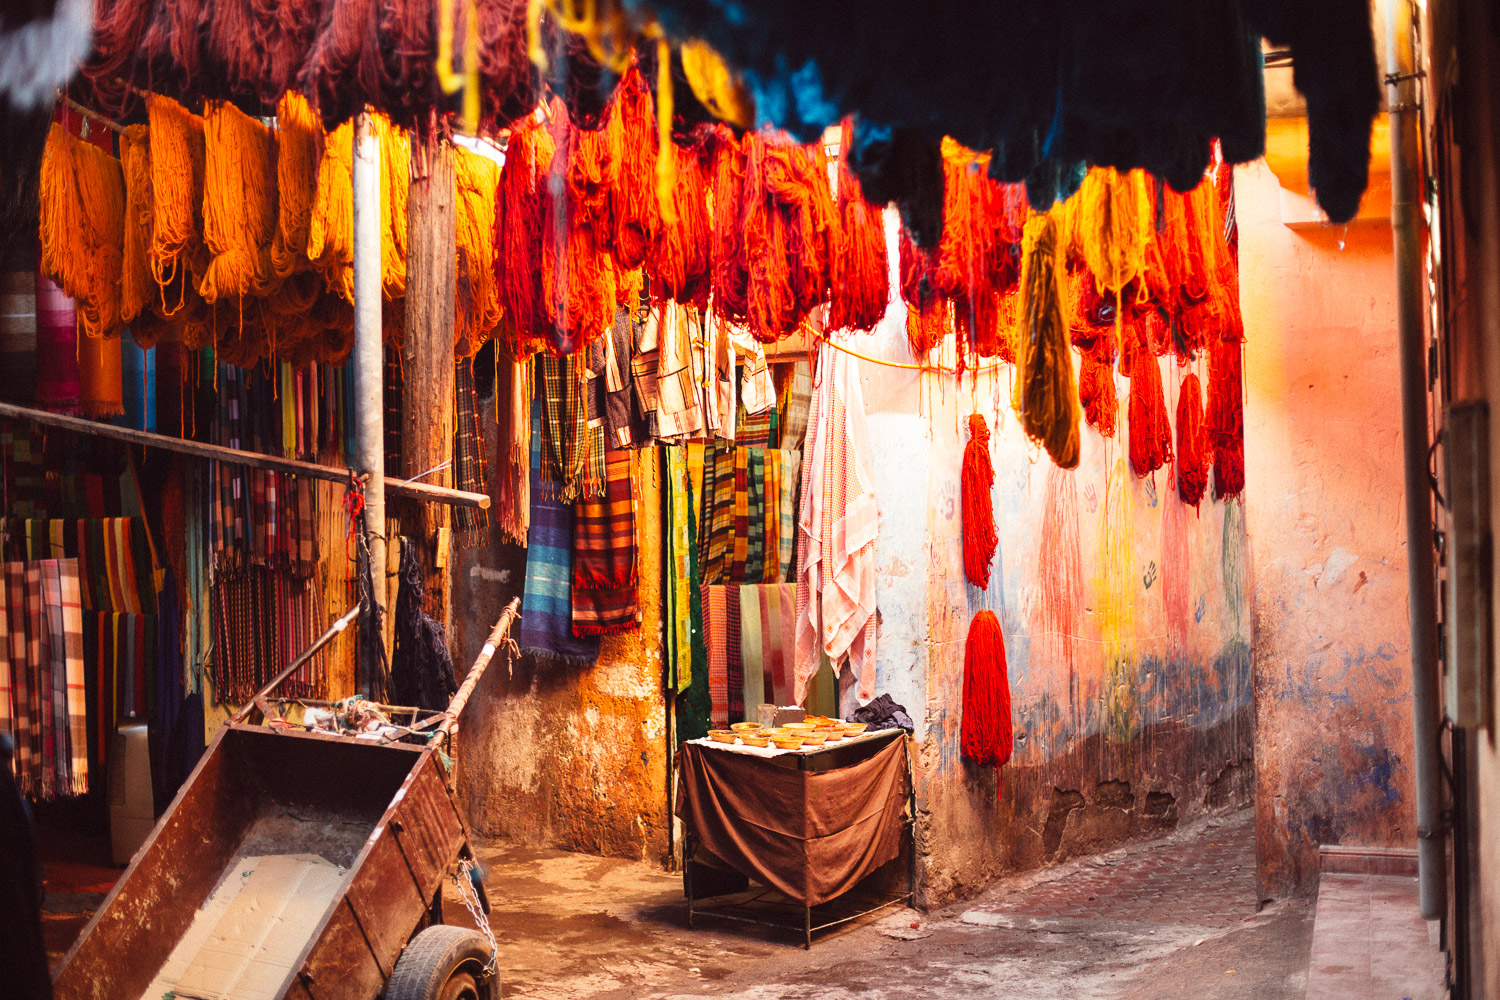 City of Marrakech, Morocco. A back-alley in the dyers market.